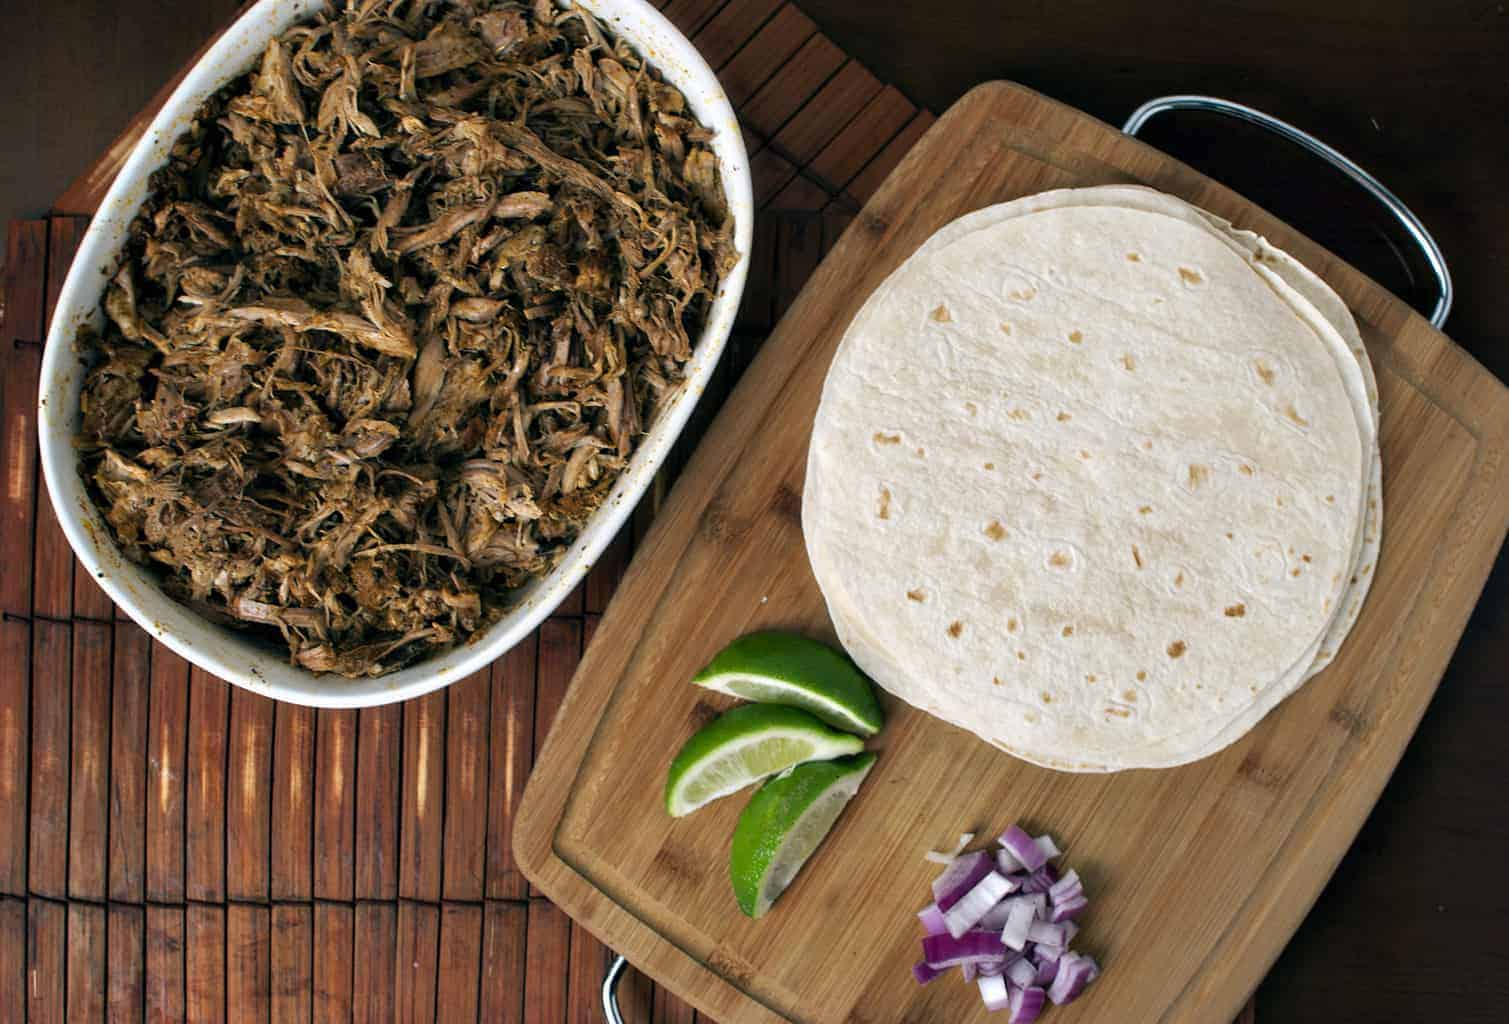 Felize Cinco de Mayo! Conchinita Pibil, barbecued pork